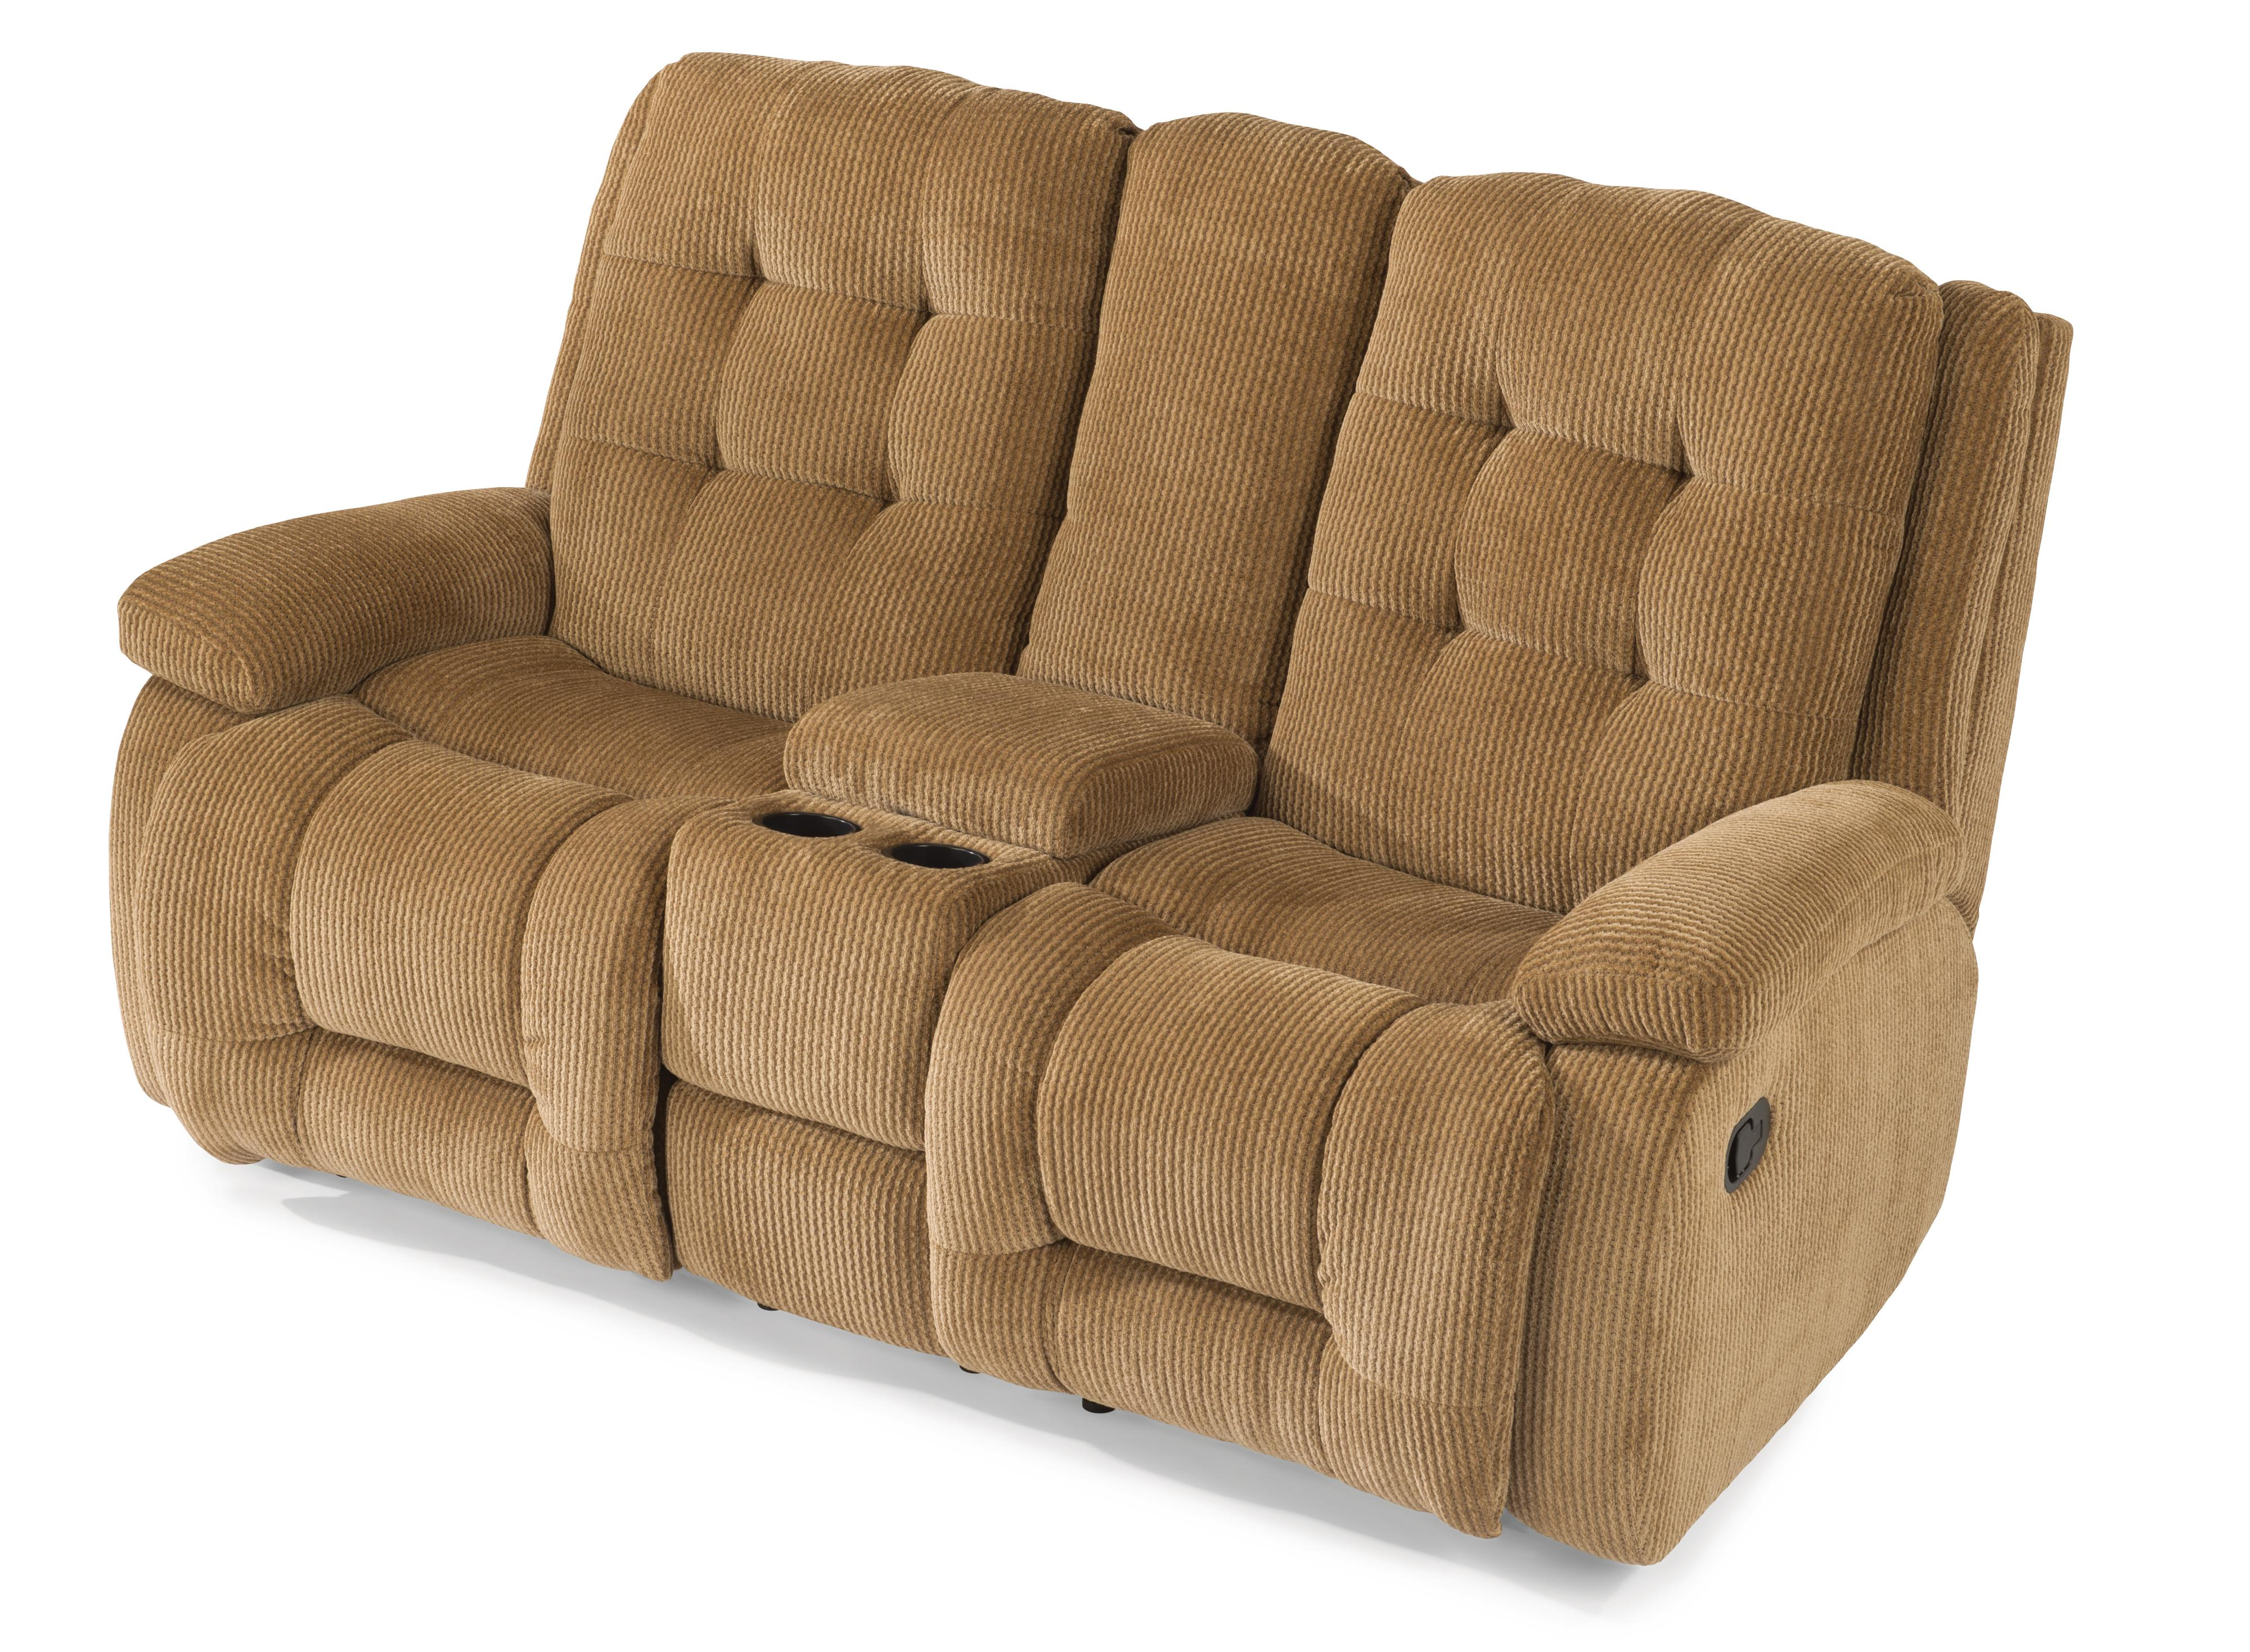 Flexsteel Paxton Reclining Loveseat w/ Console - Item Number: 4882-601-811-90